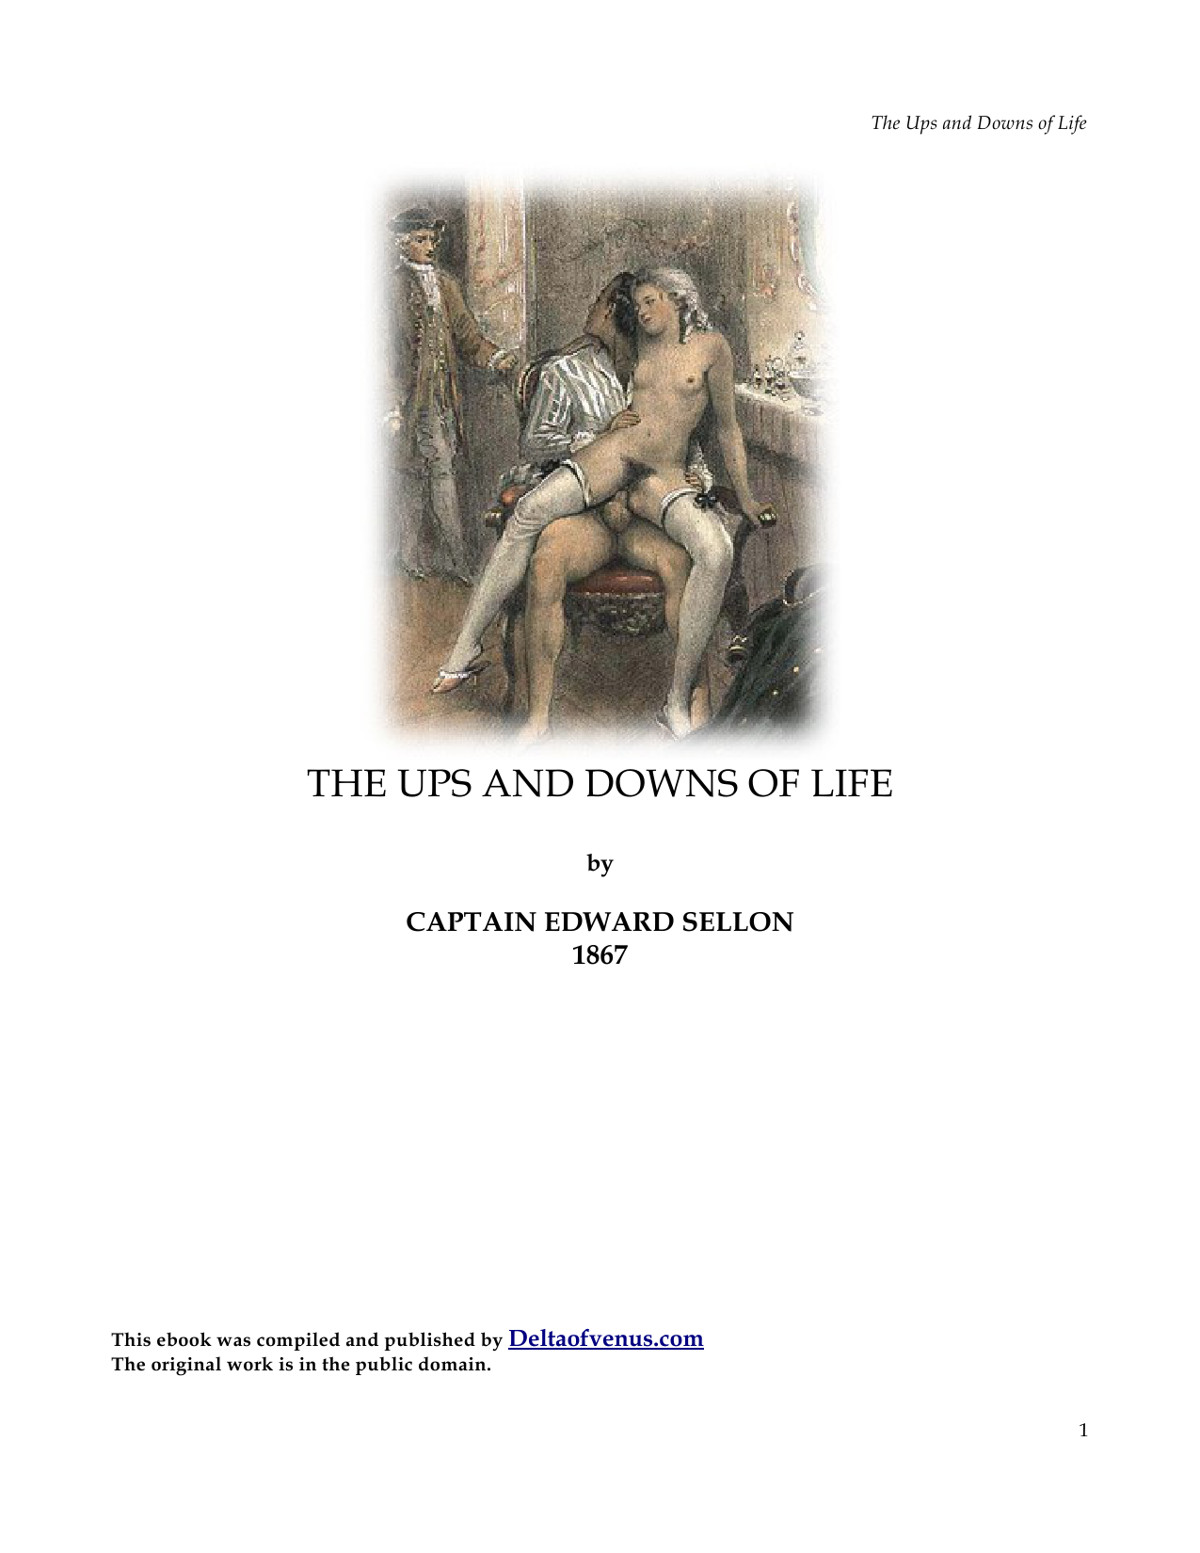 обложка книги The Ups and Downs of Life